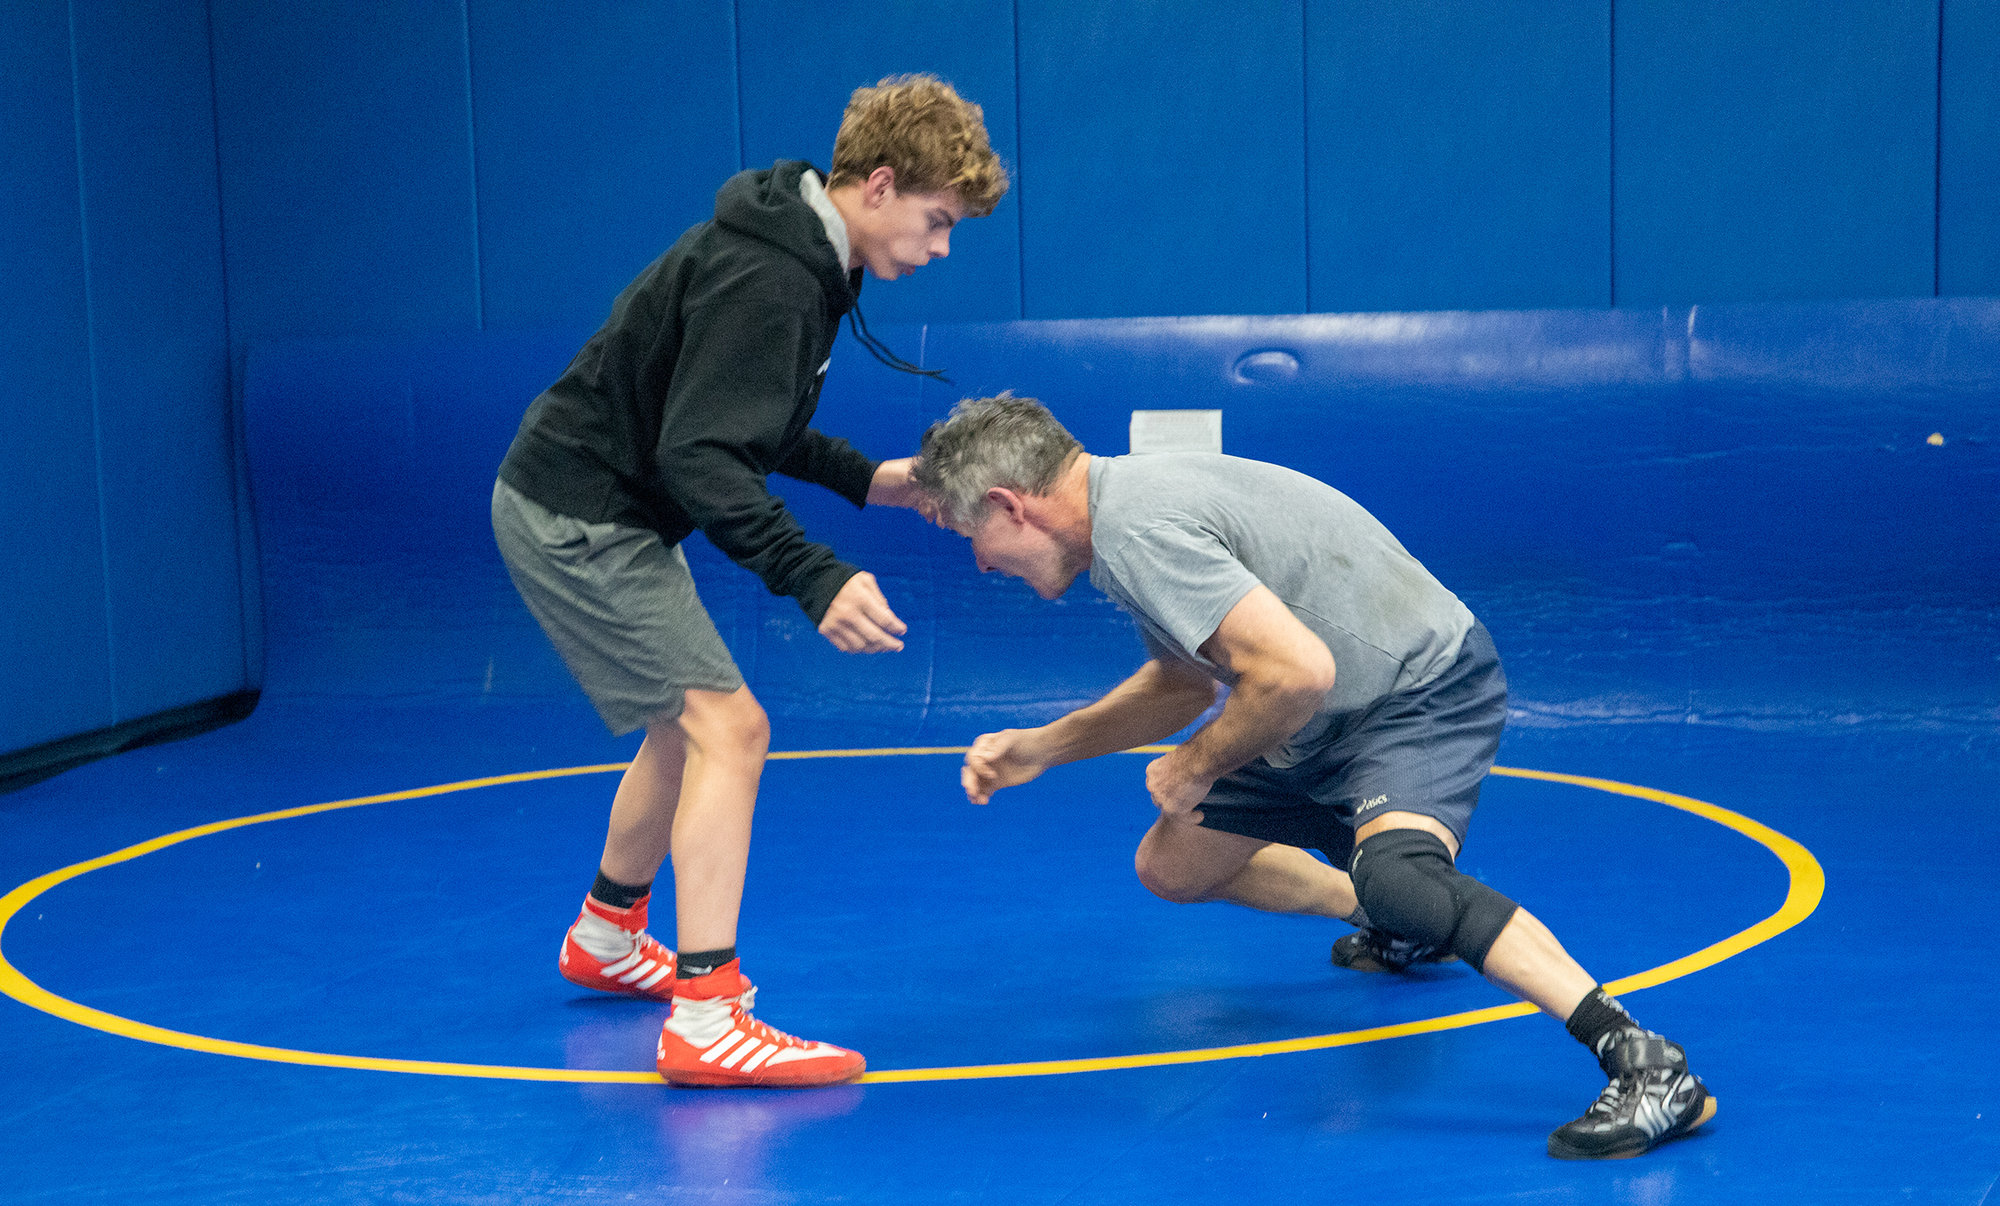 Owen Emmick (left) trains with Lansing wrestling head coach Gene Nighman (right). Nighman has coached at both Cornell and SUNY Cortland.